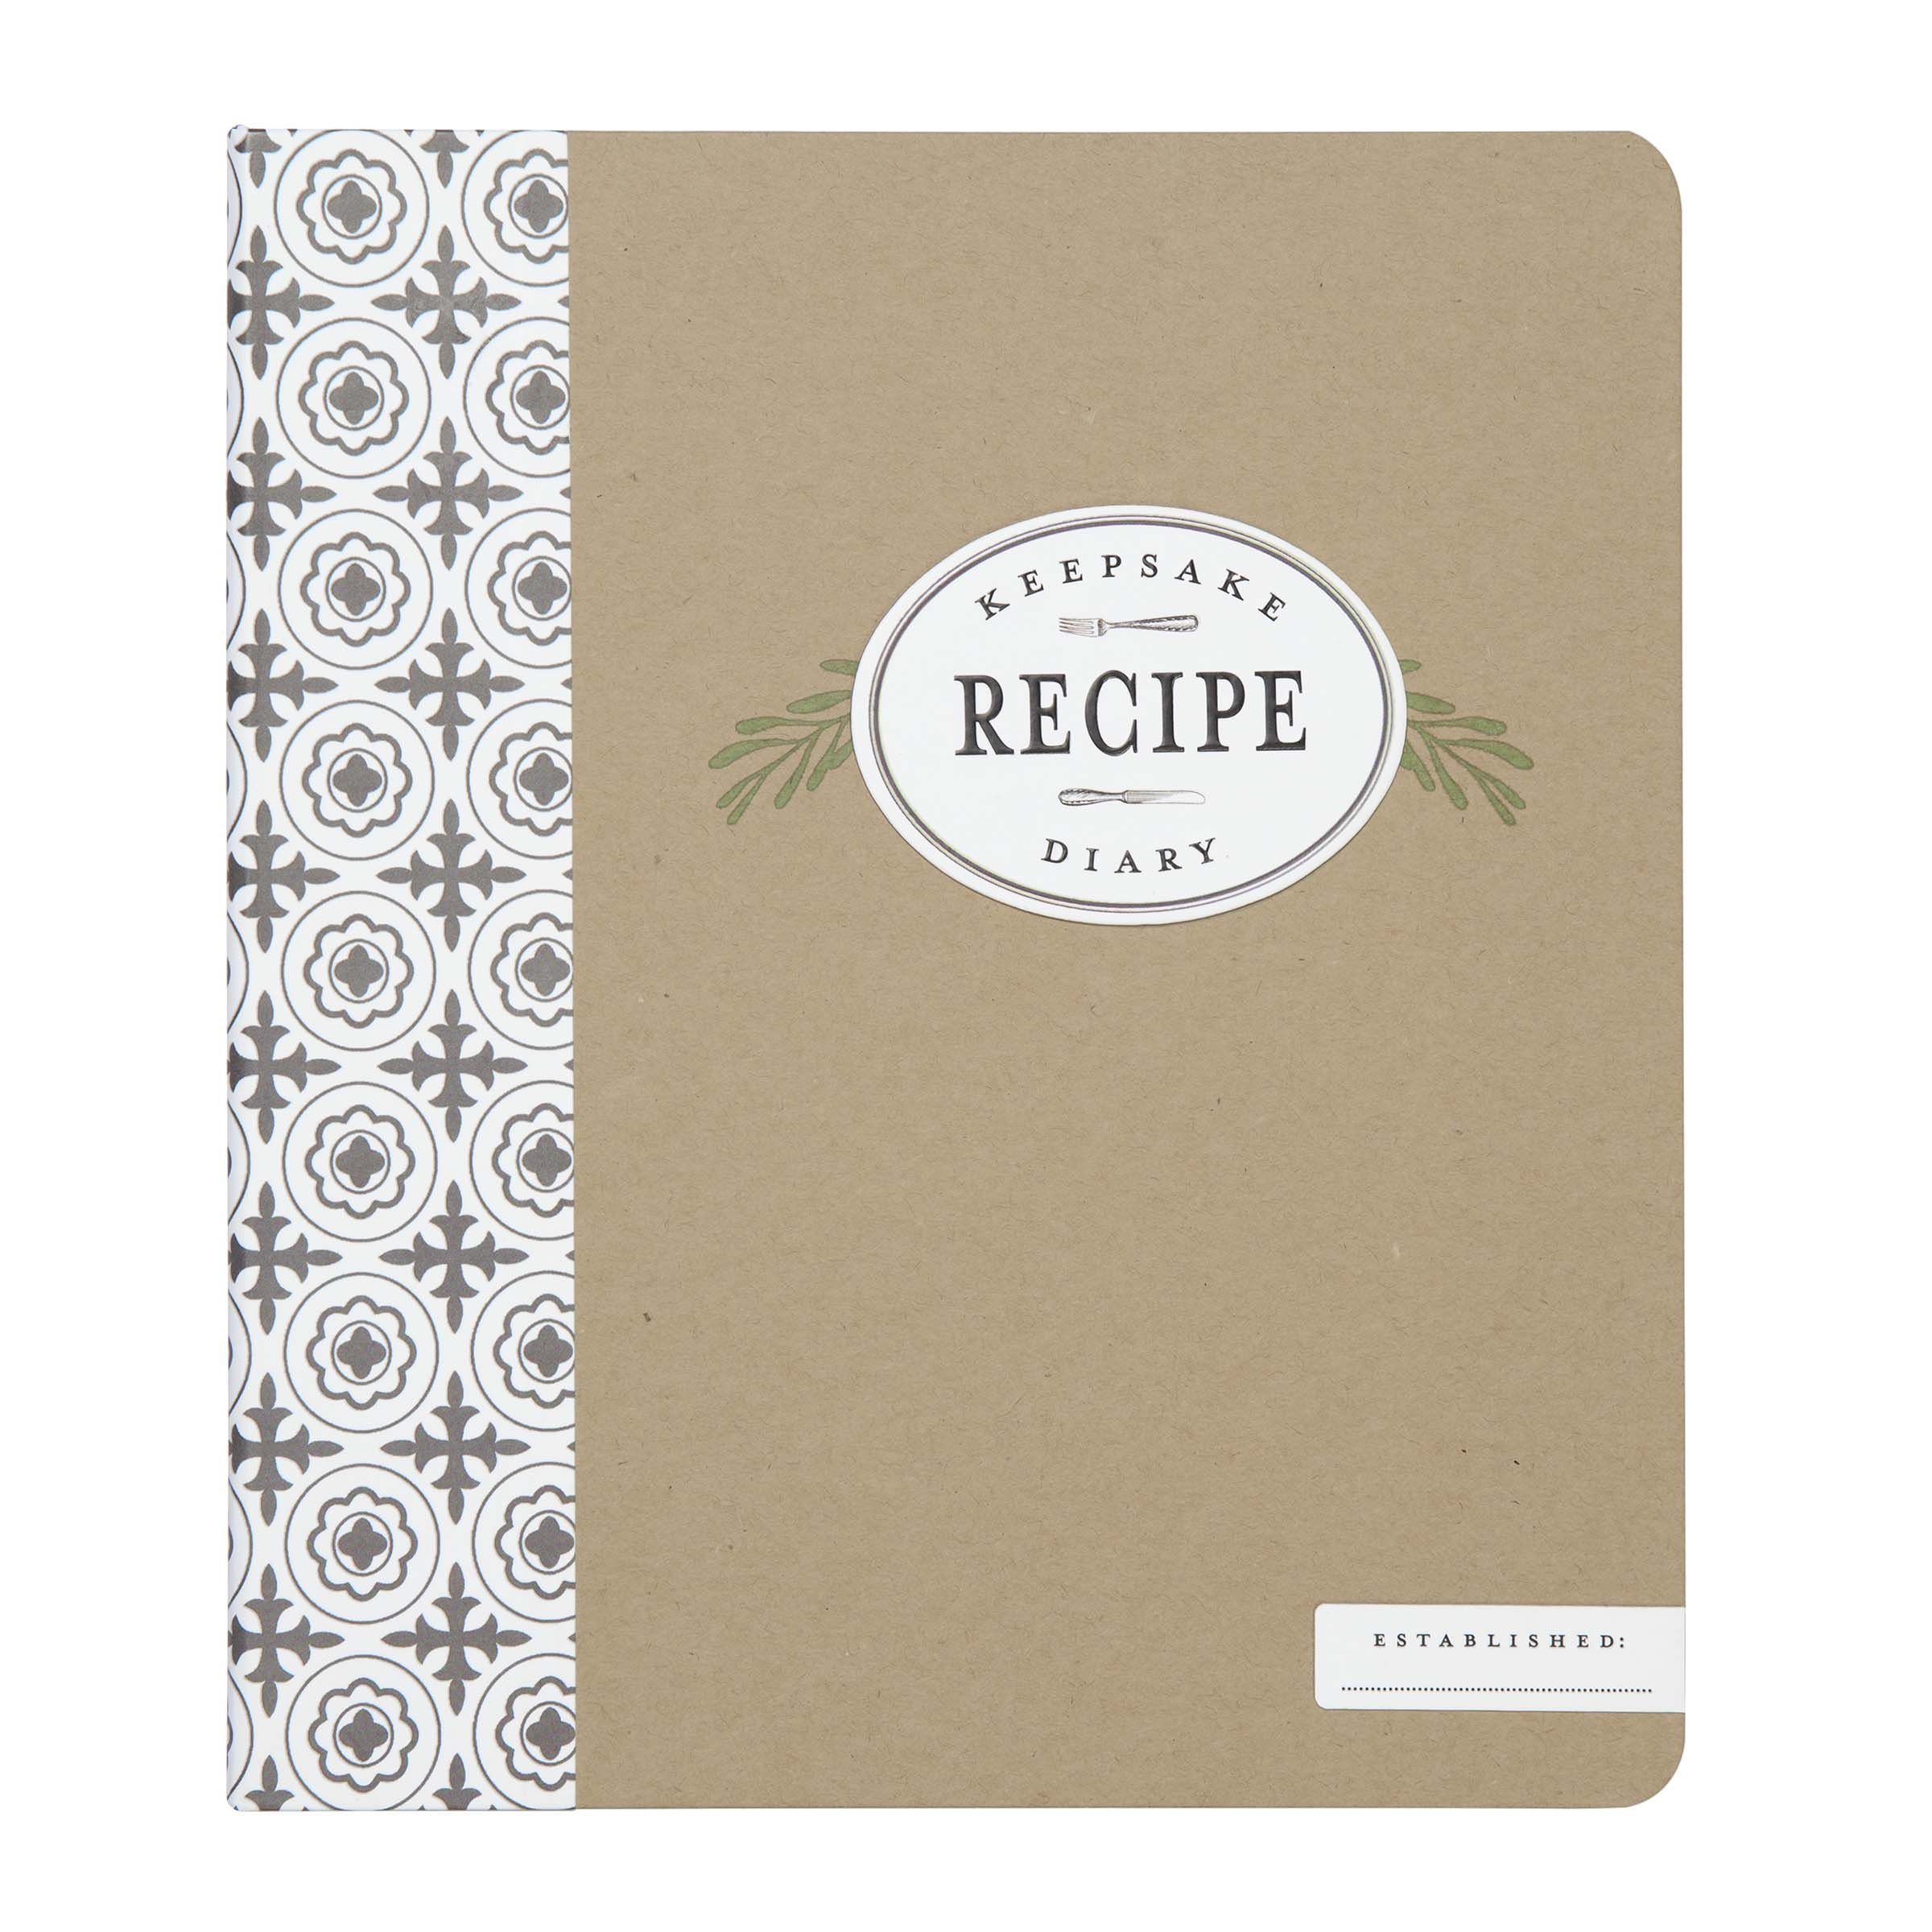 C.R. Gibson Keepsake Recipe Diary, Binder With 12 Divider Tabs, 40 Journal & Recipe Pages, Includes 2 Pages Of Stickers, Measures 8.25'' W x 9.5'' H x 1.75'' D - Farmhouse